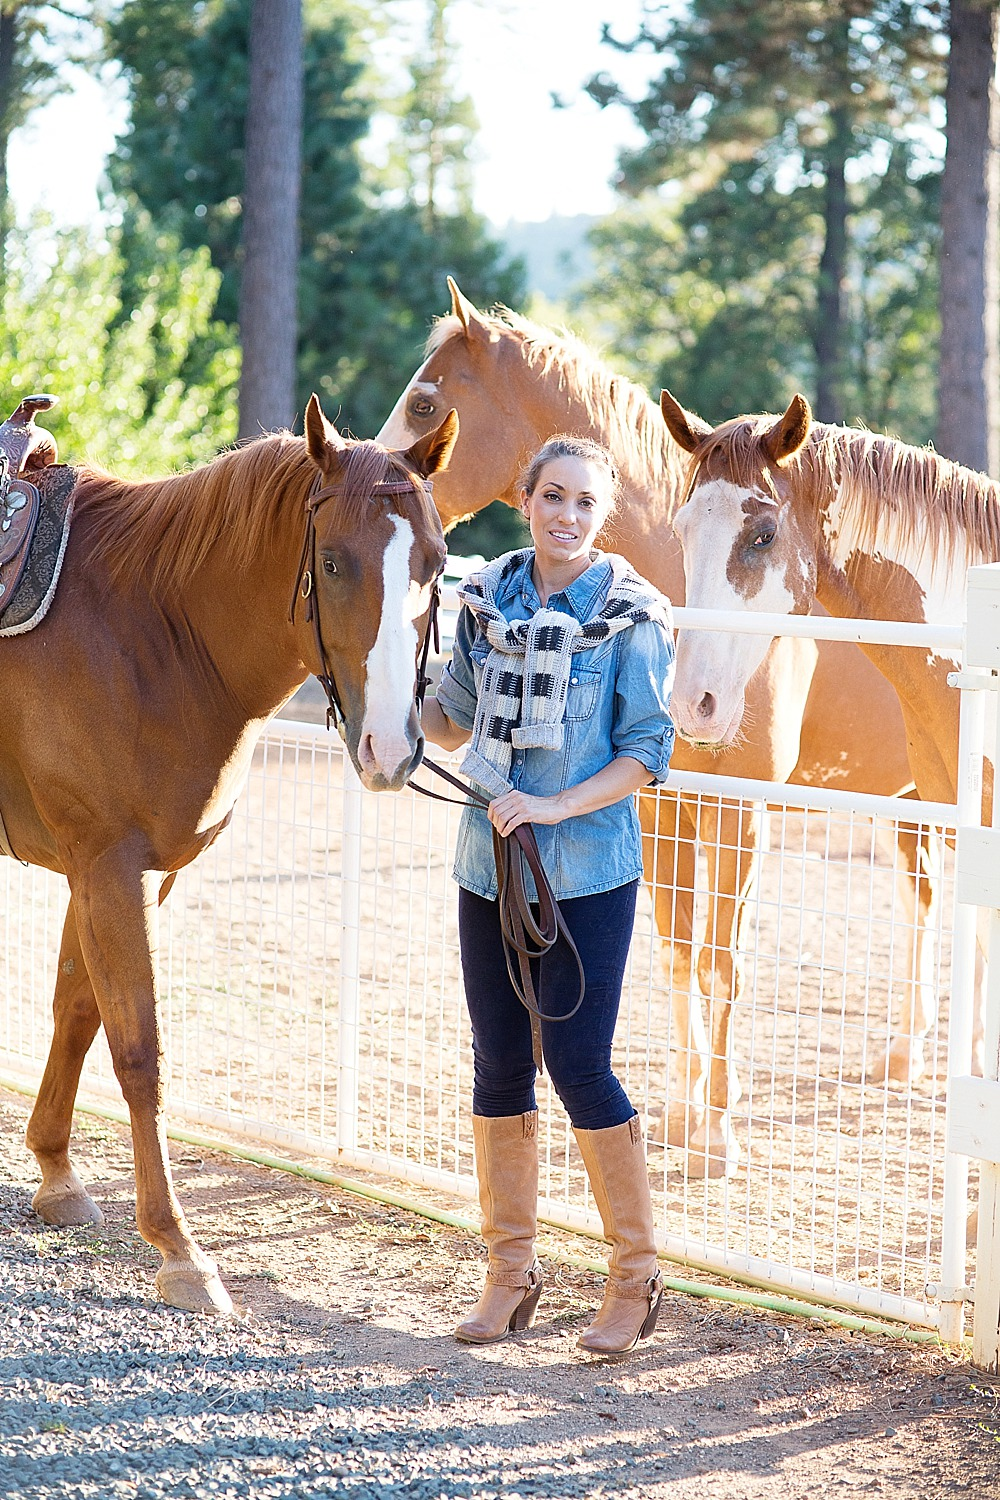 rachel-equestrian-grass-valley-diana-elizabeth-photography-213